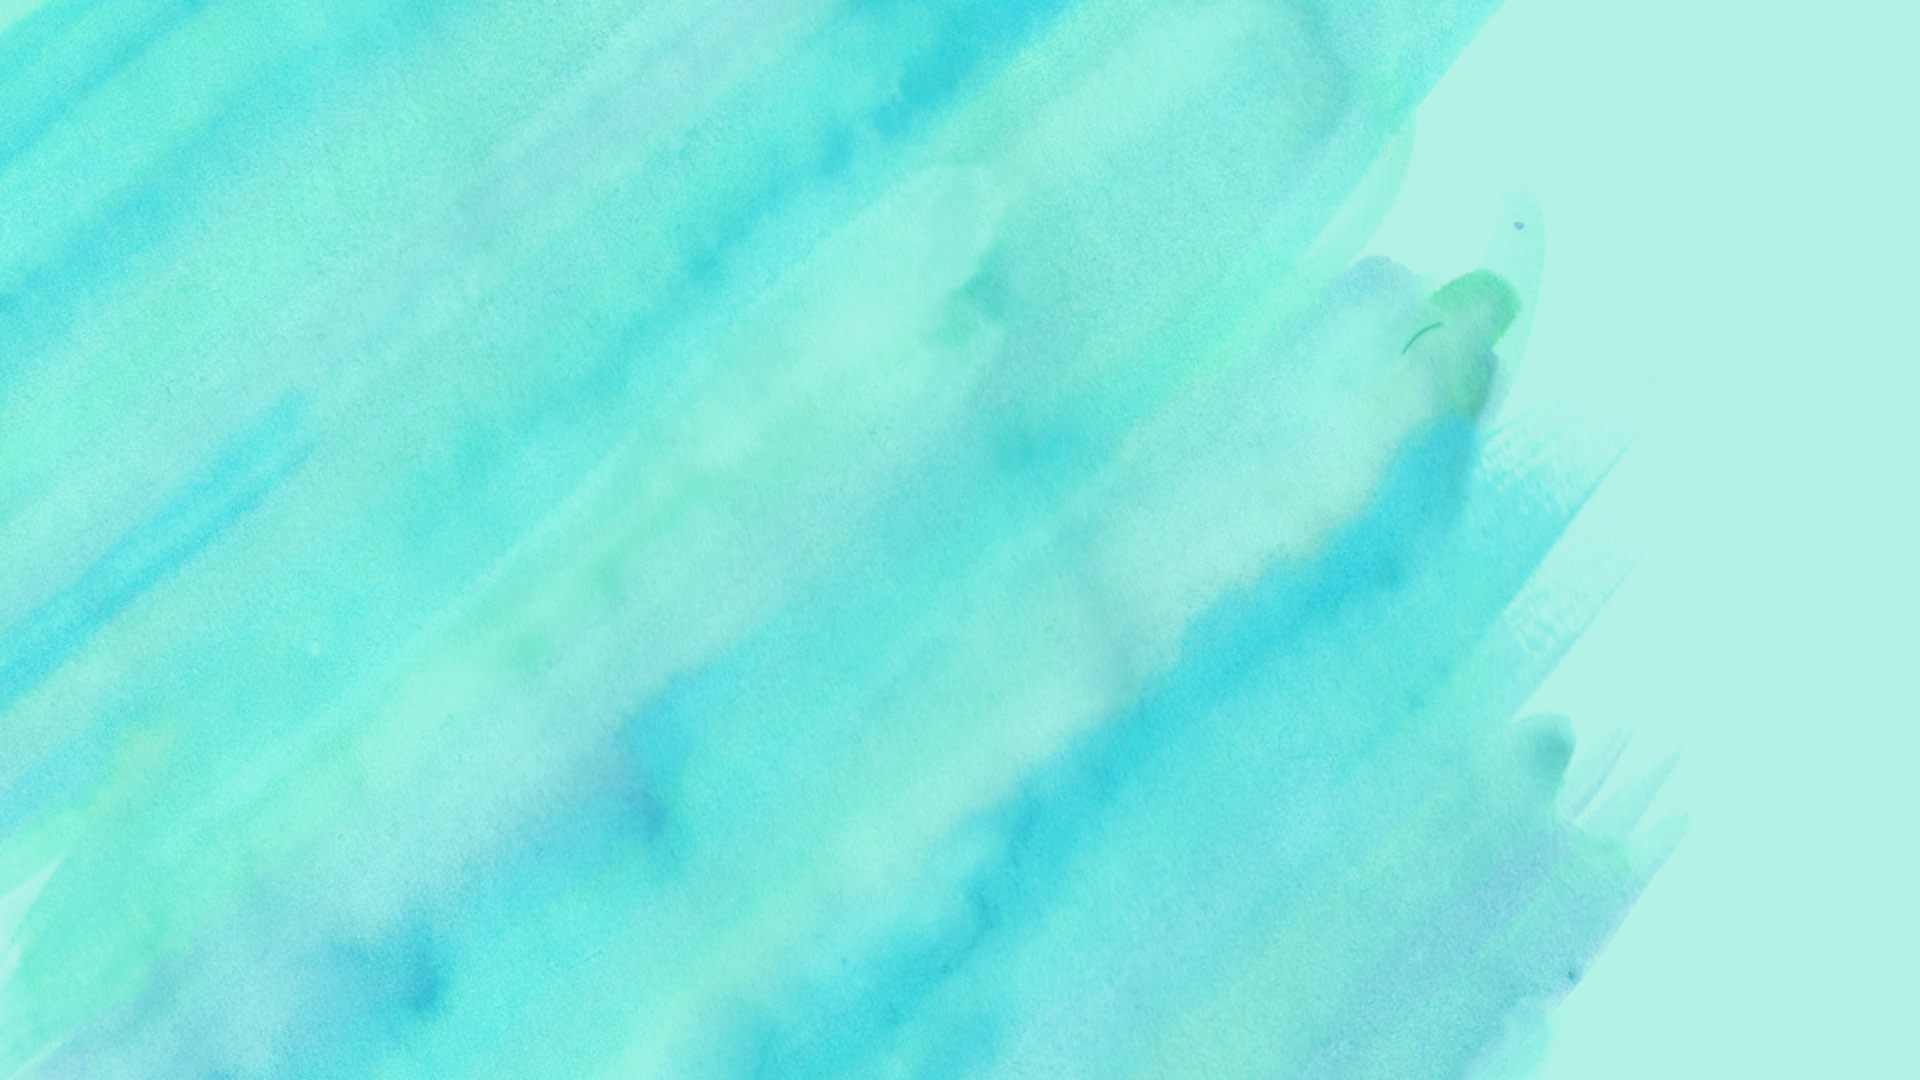 Blue Watercolor Background 1 Download Free Stunning HD Backgrounds